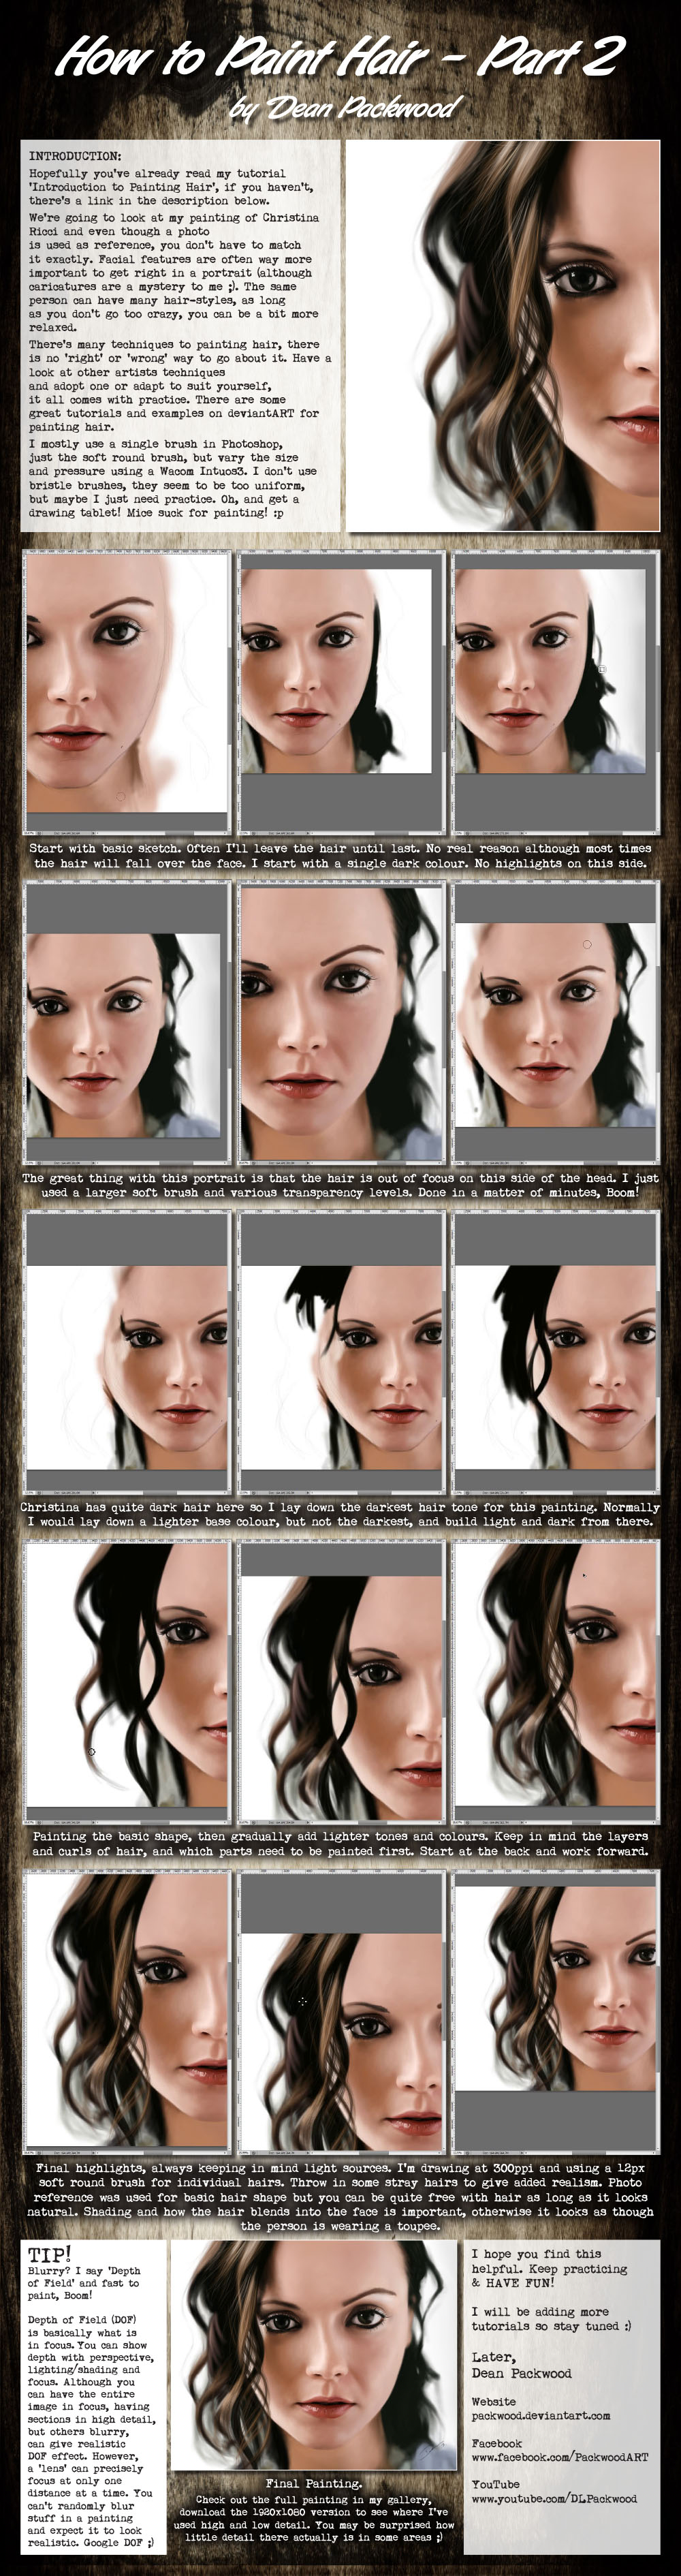 Hair Tutorial - Part 2 by Packwood